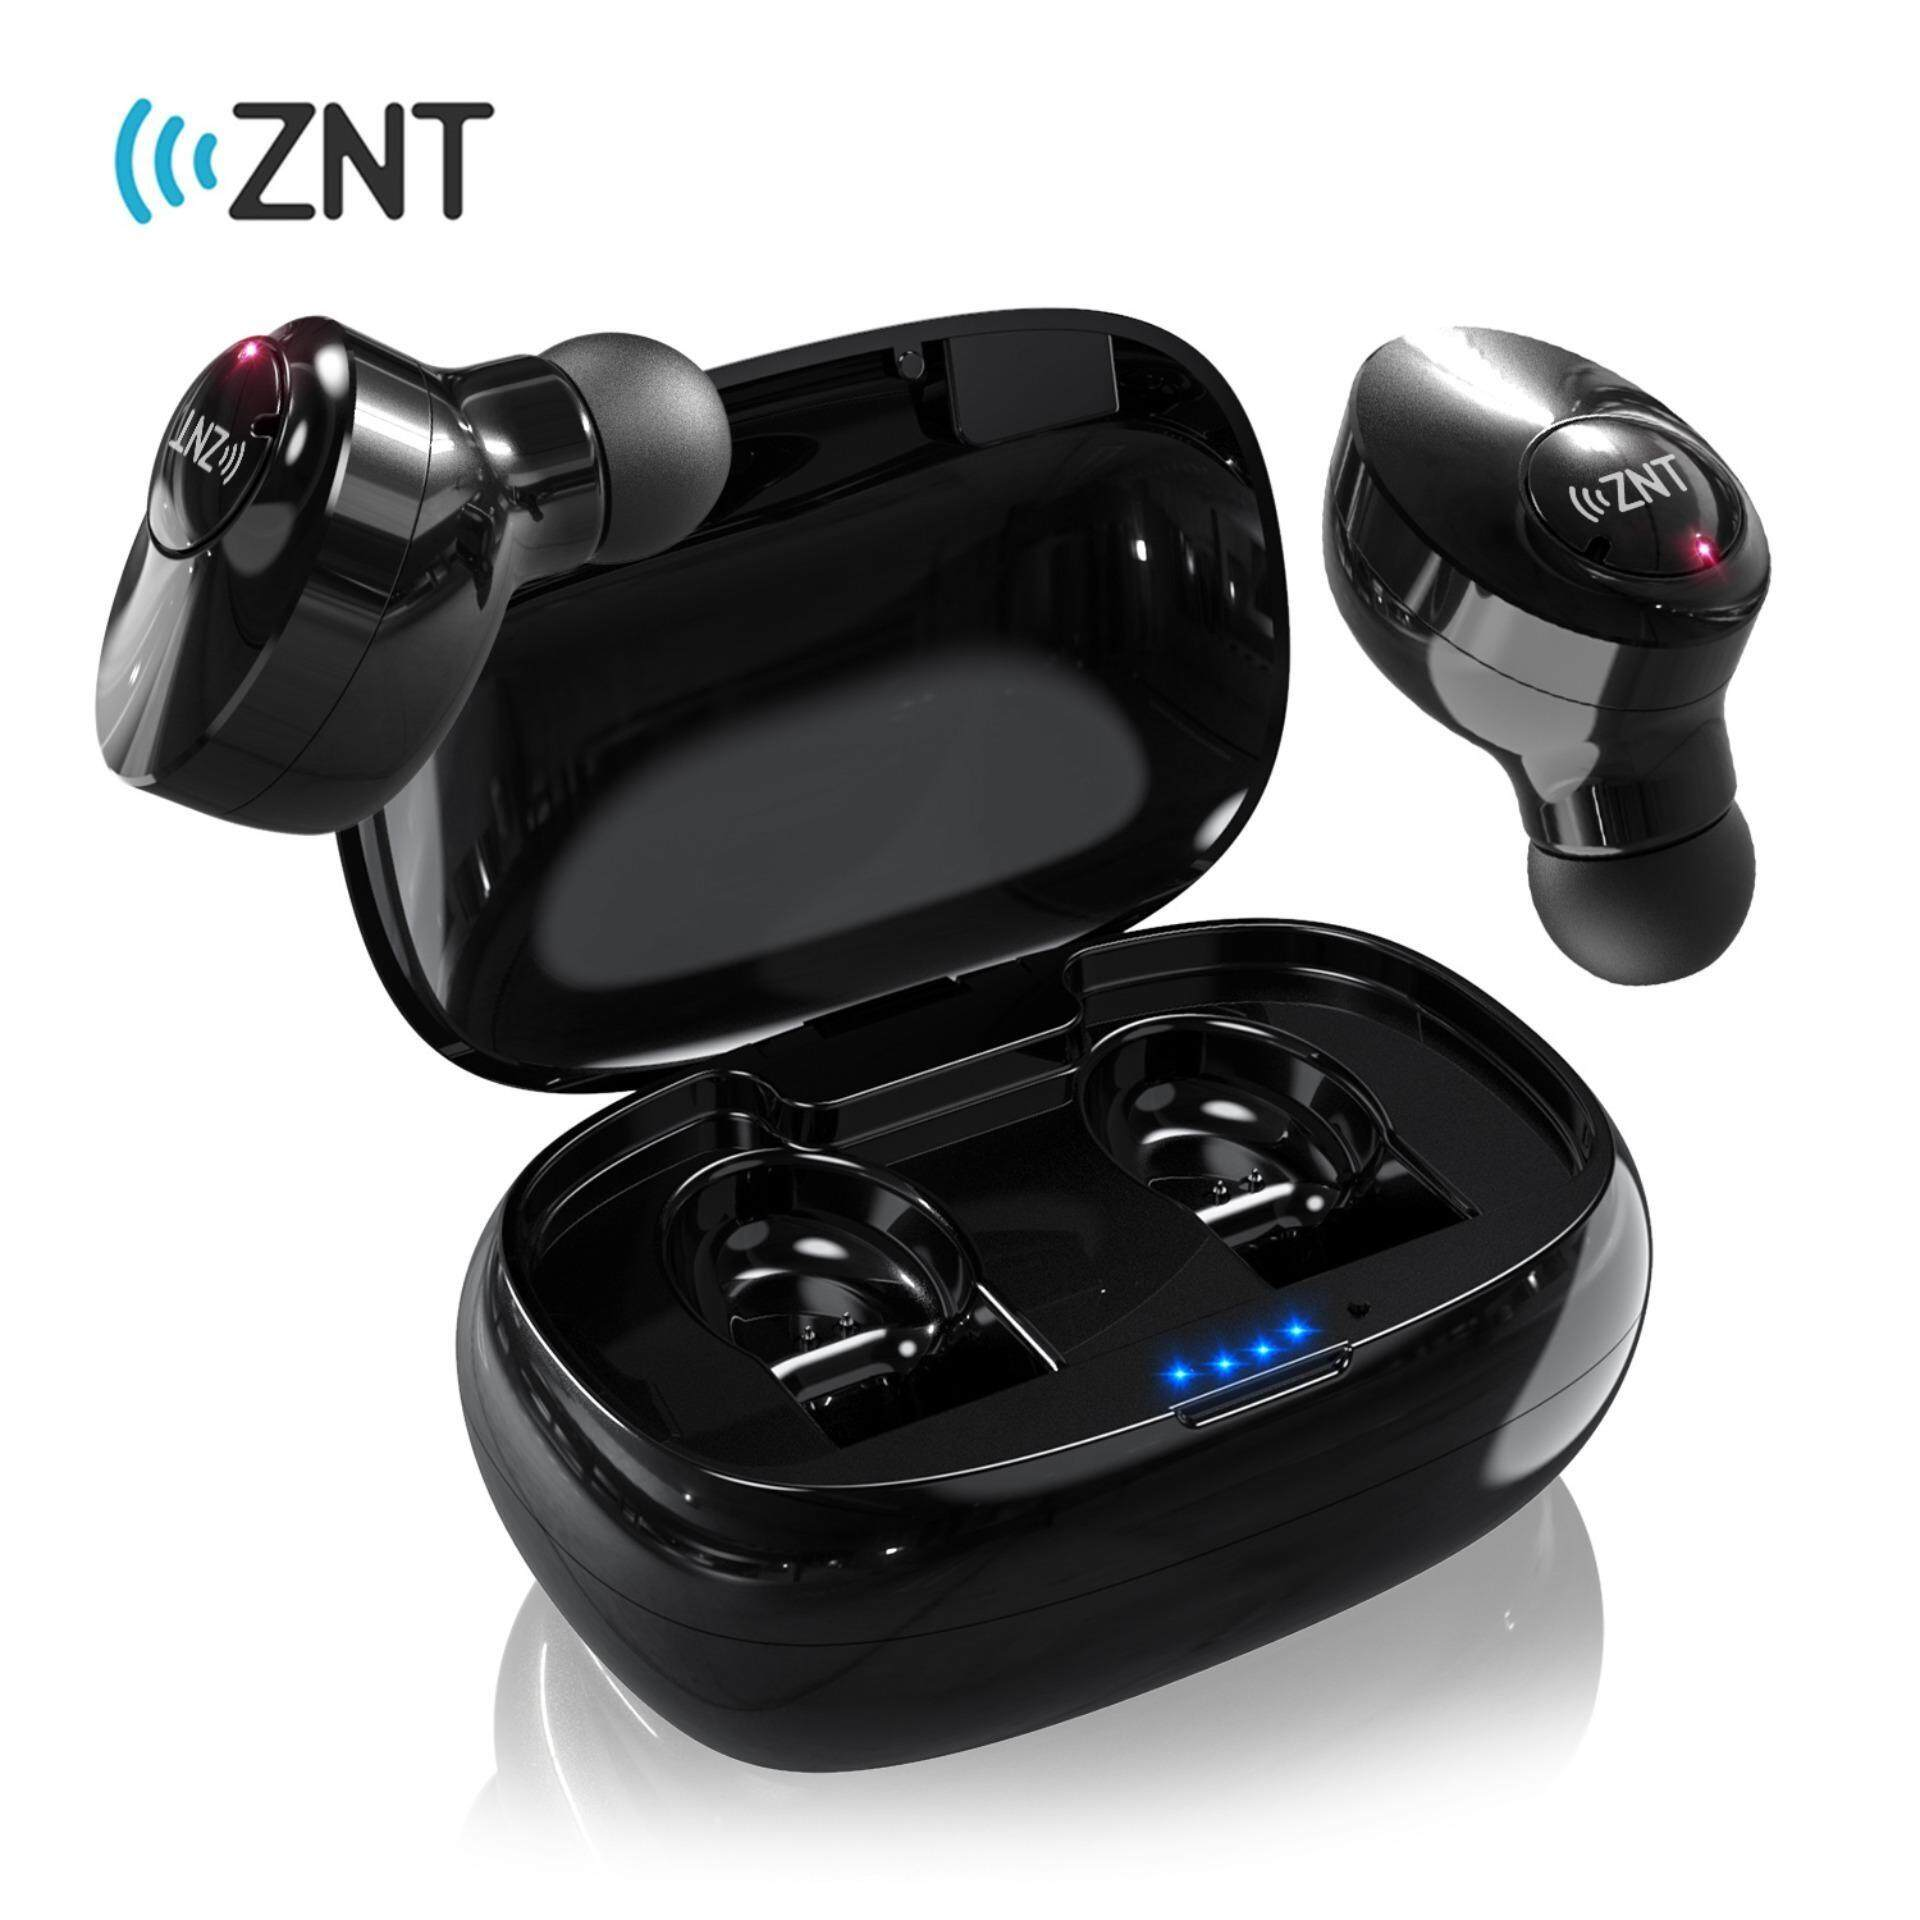 078f5e81ca8 ZNT FireFit Bluetooth 5.0 High Quality Sound True Stereo Earbuds Bluetooth  Earphone with Charging Case-